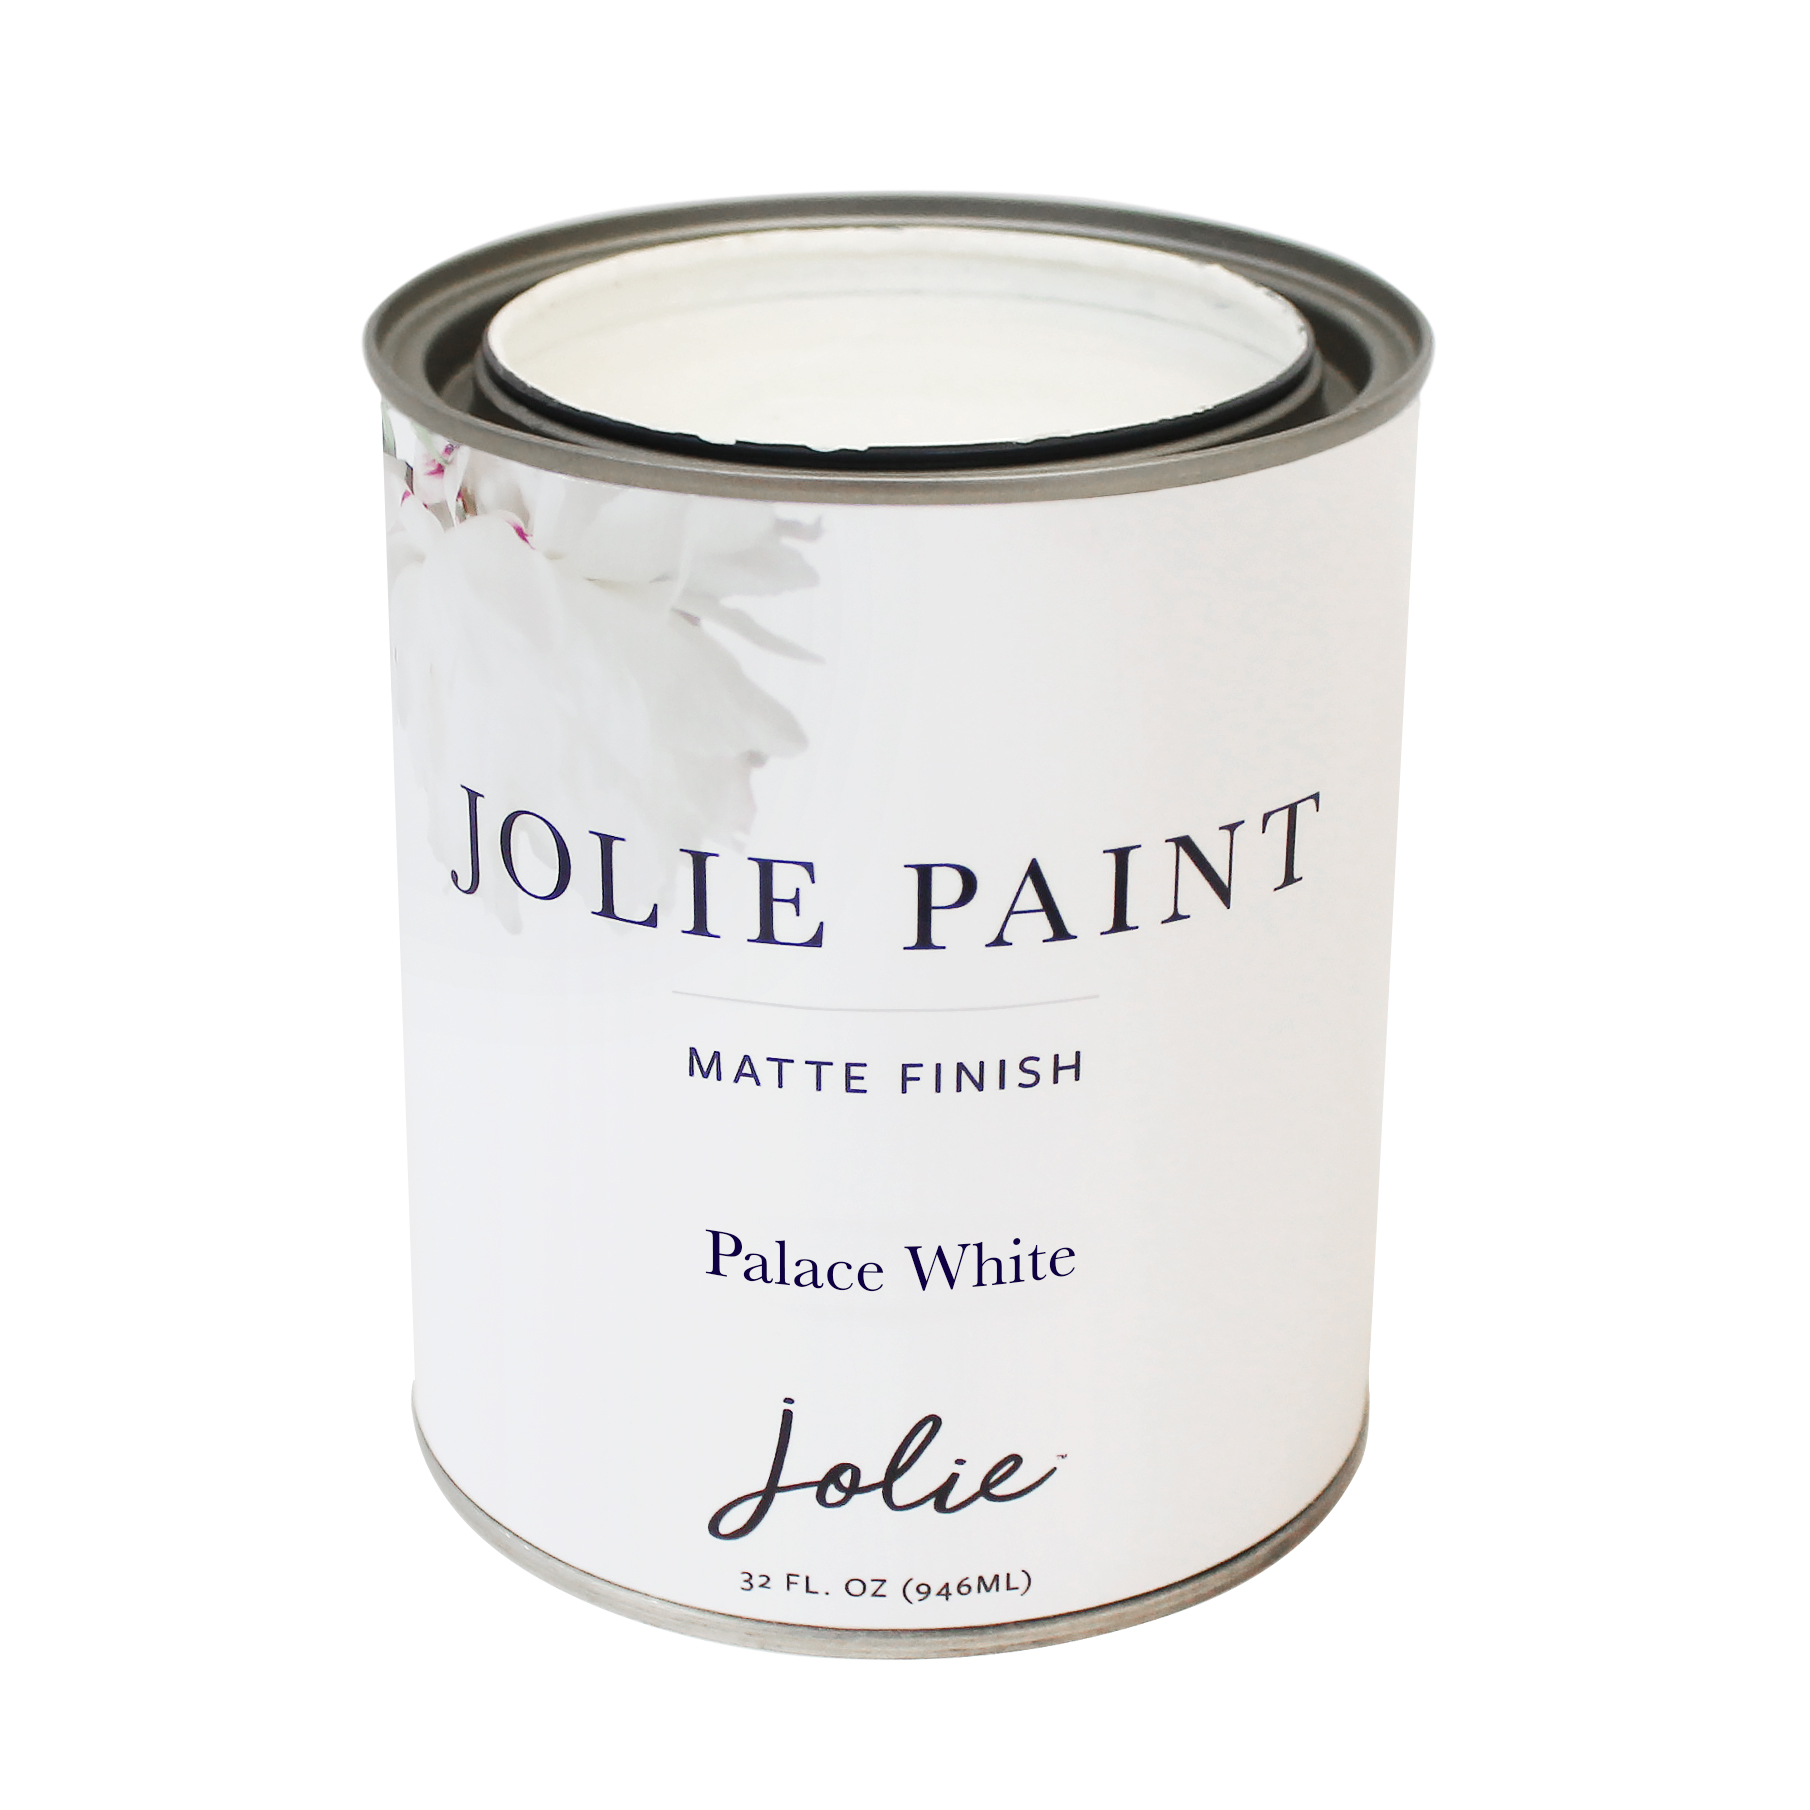 Palace White- Jolie Paint